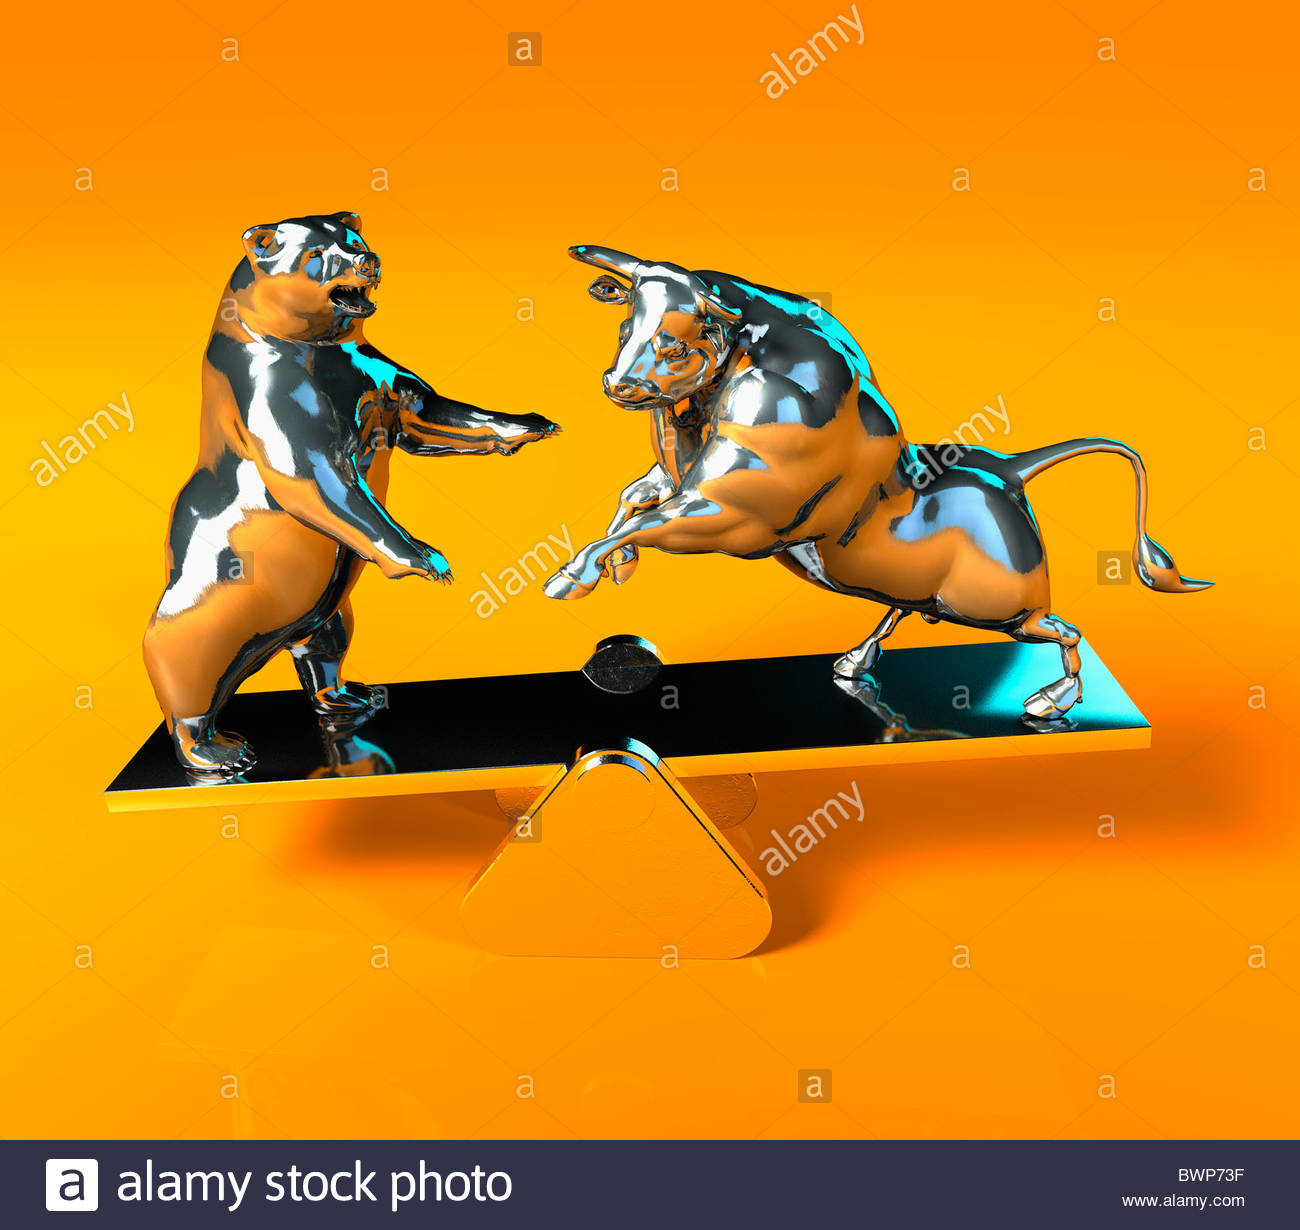 Bull and Bear en équilibre sur seesaw Photo Stock